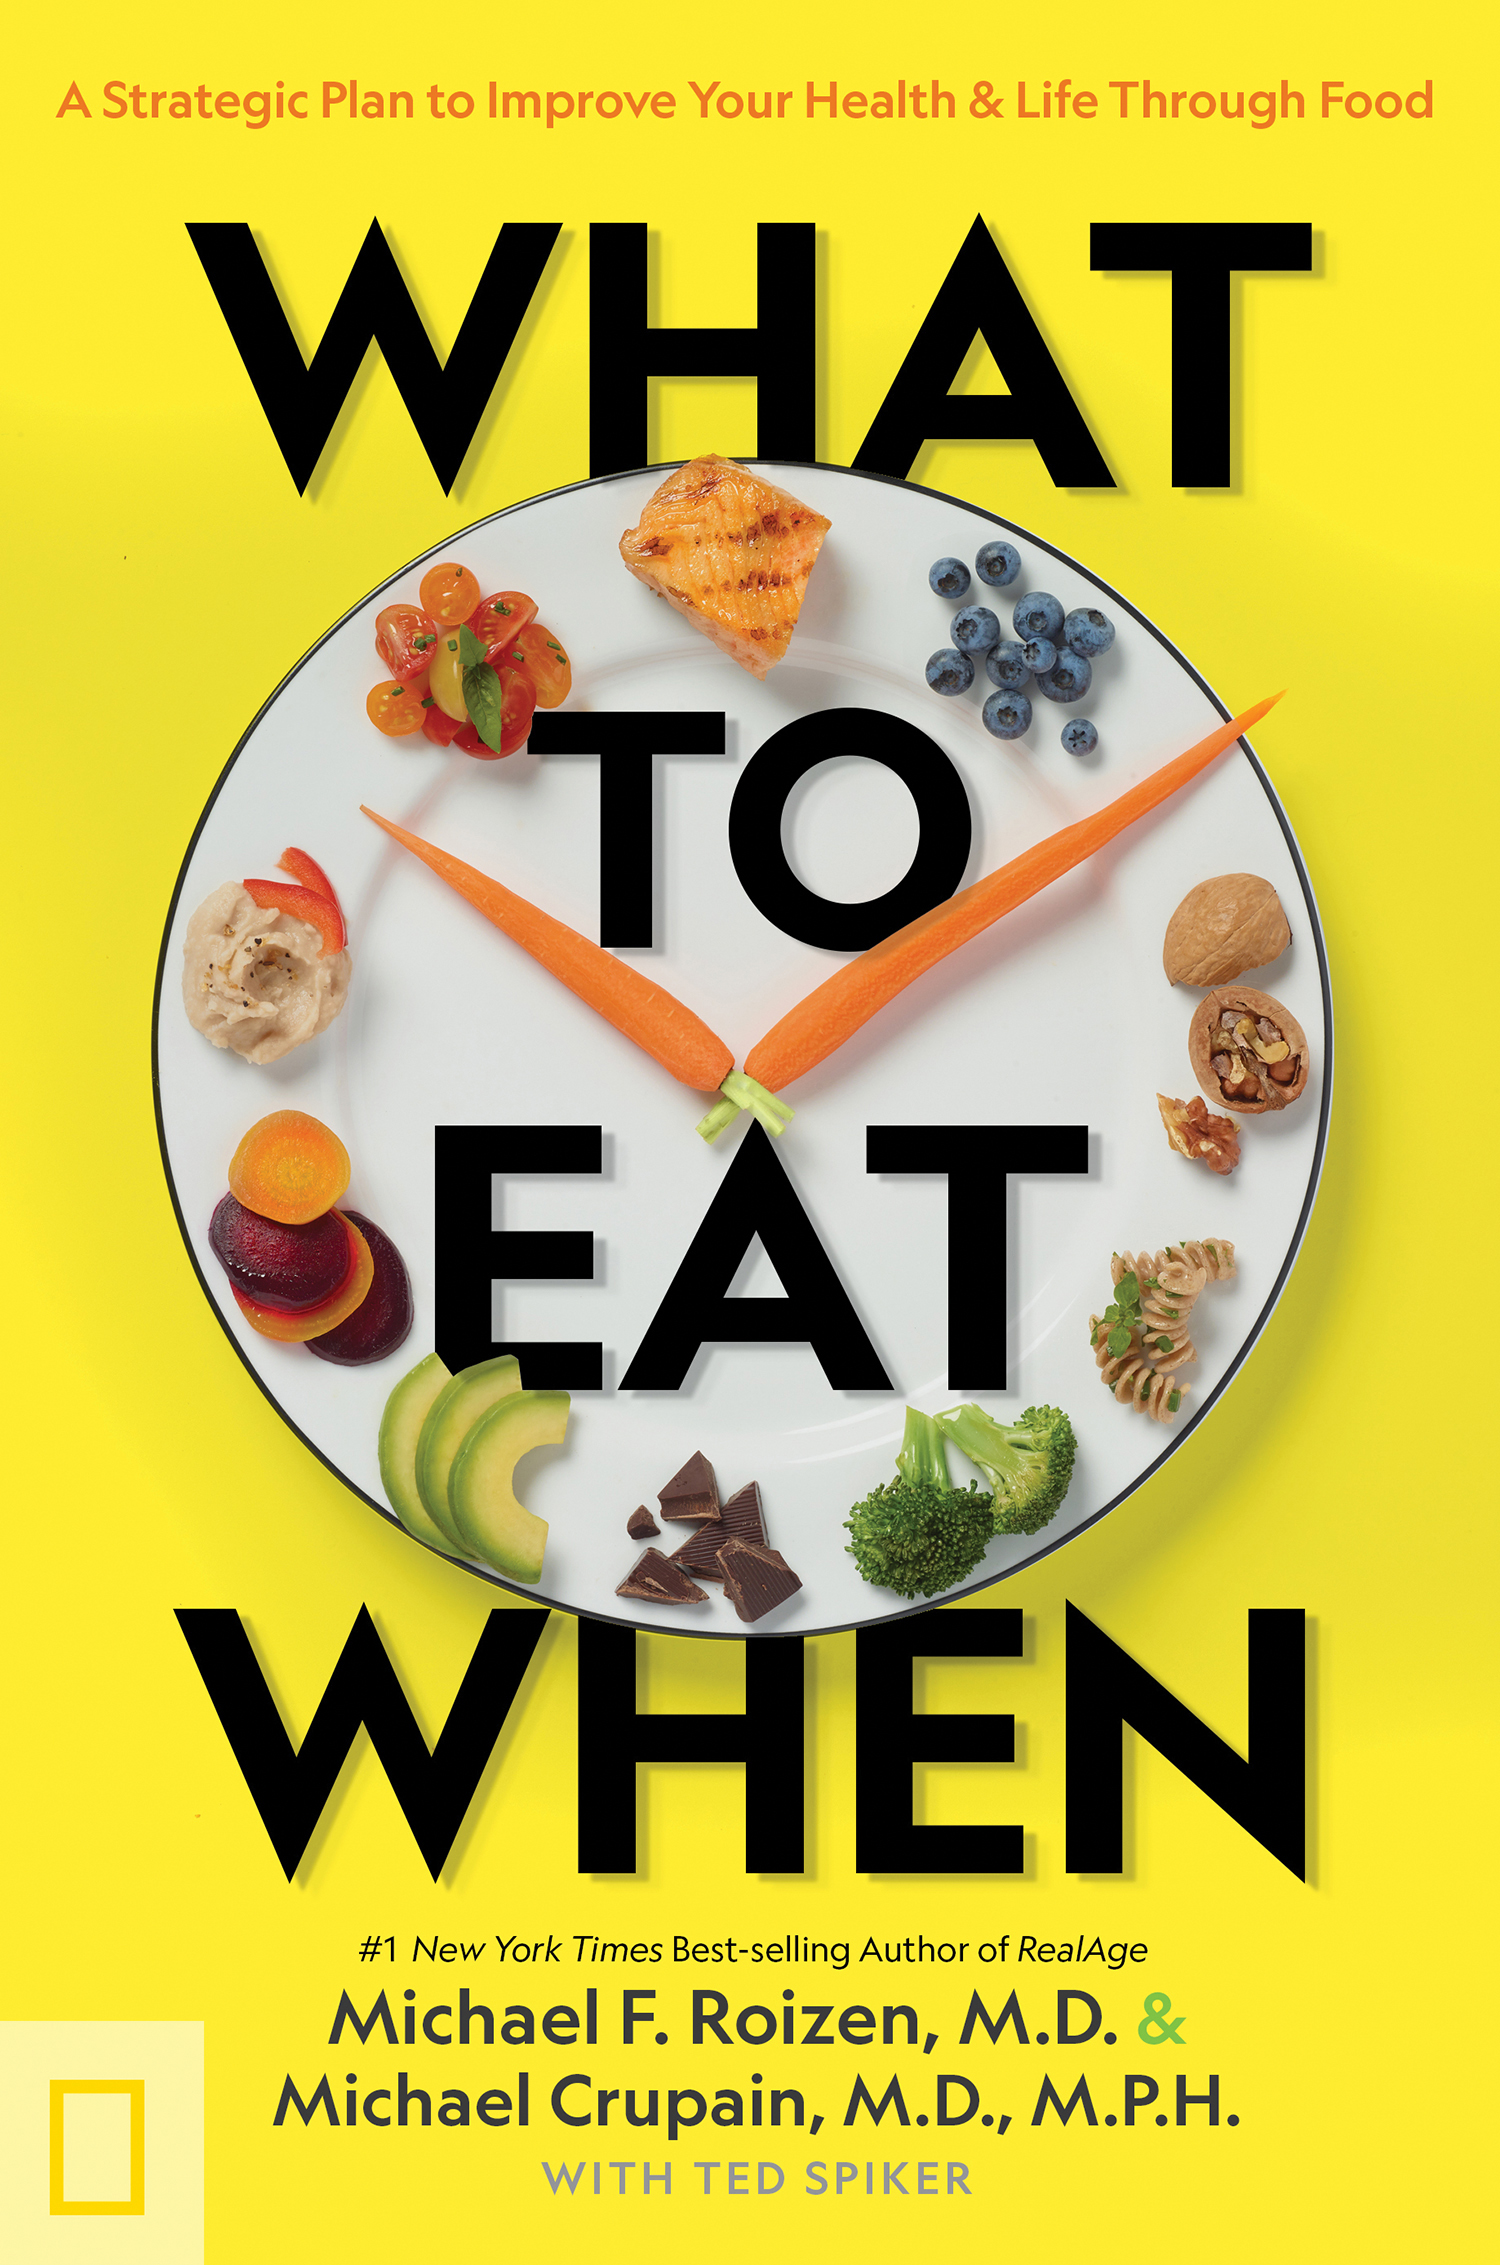 What to eat when a strategic plan to improve your health & life through food cover image